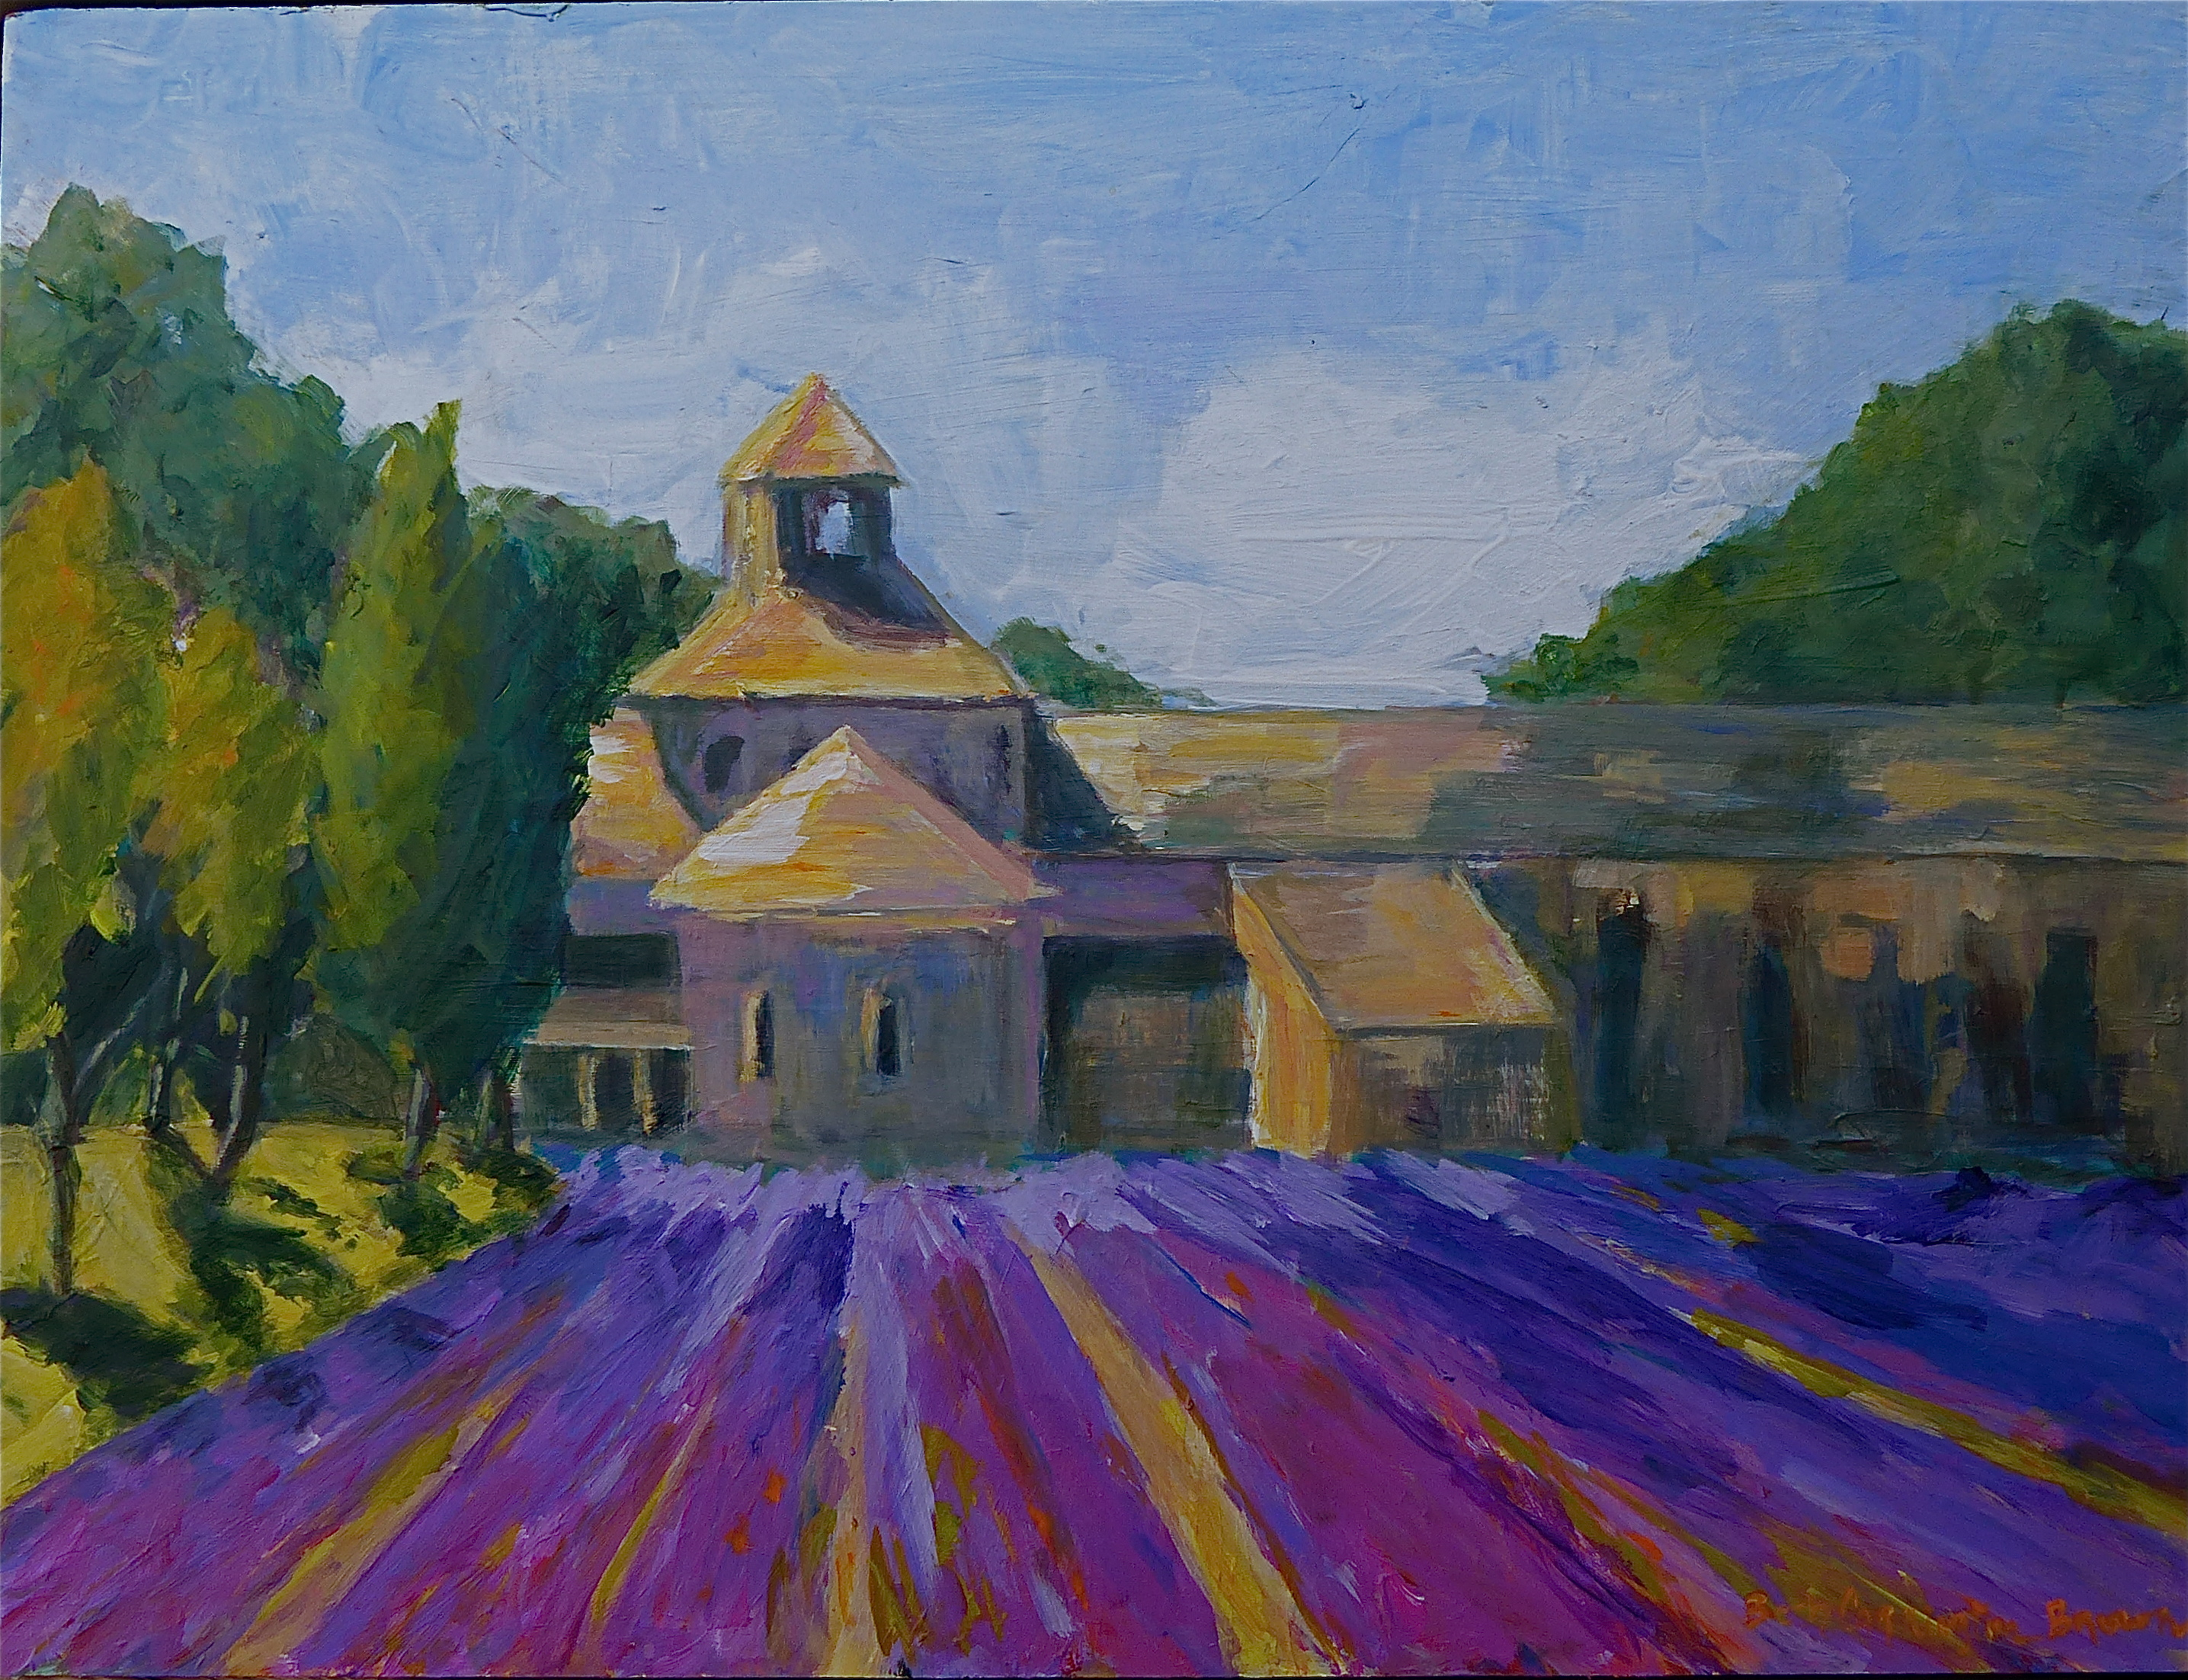 Boldly painted, brilliant colors of the lavender fields of Provence at Abbaye de Senanque